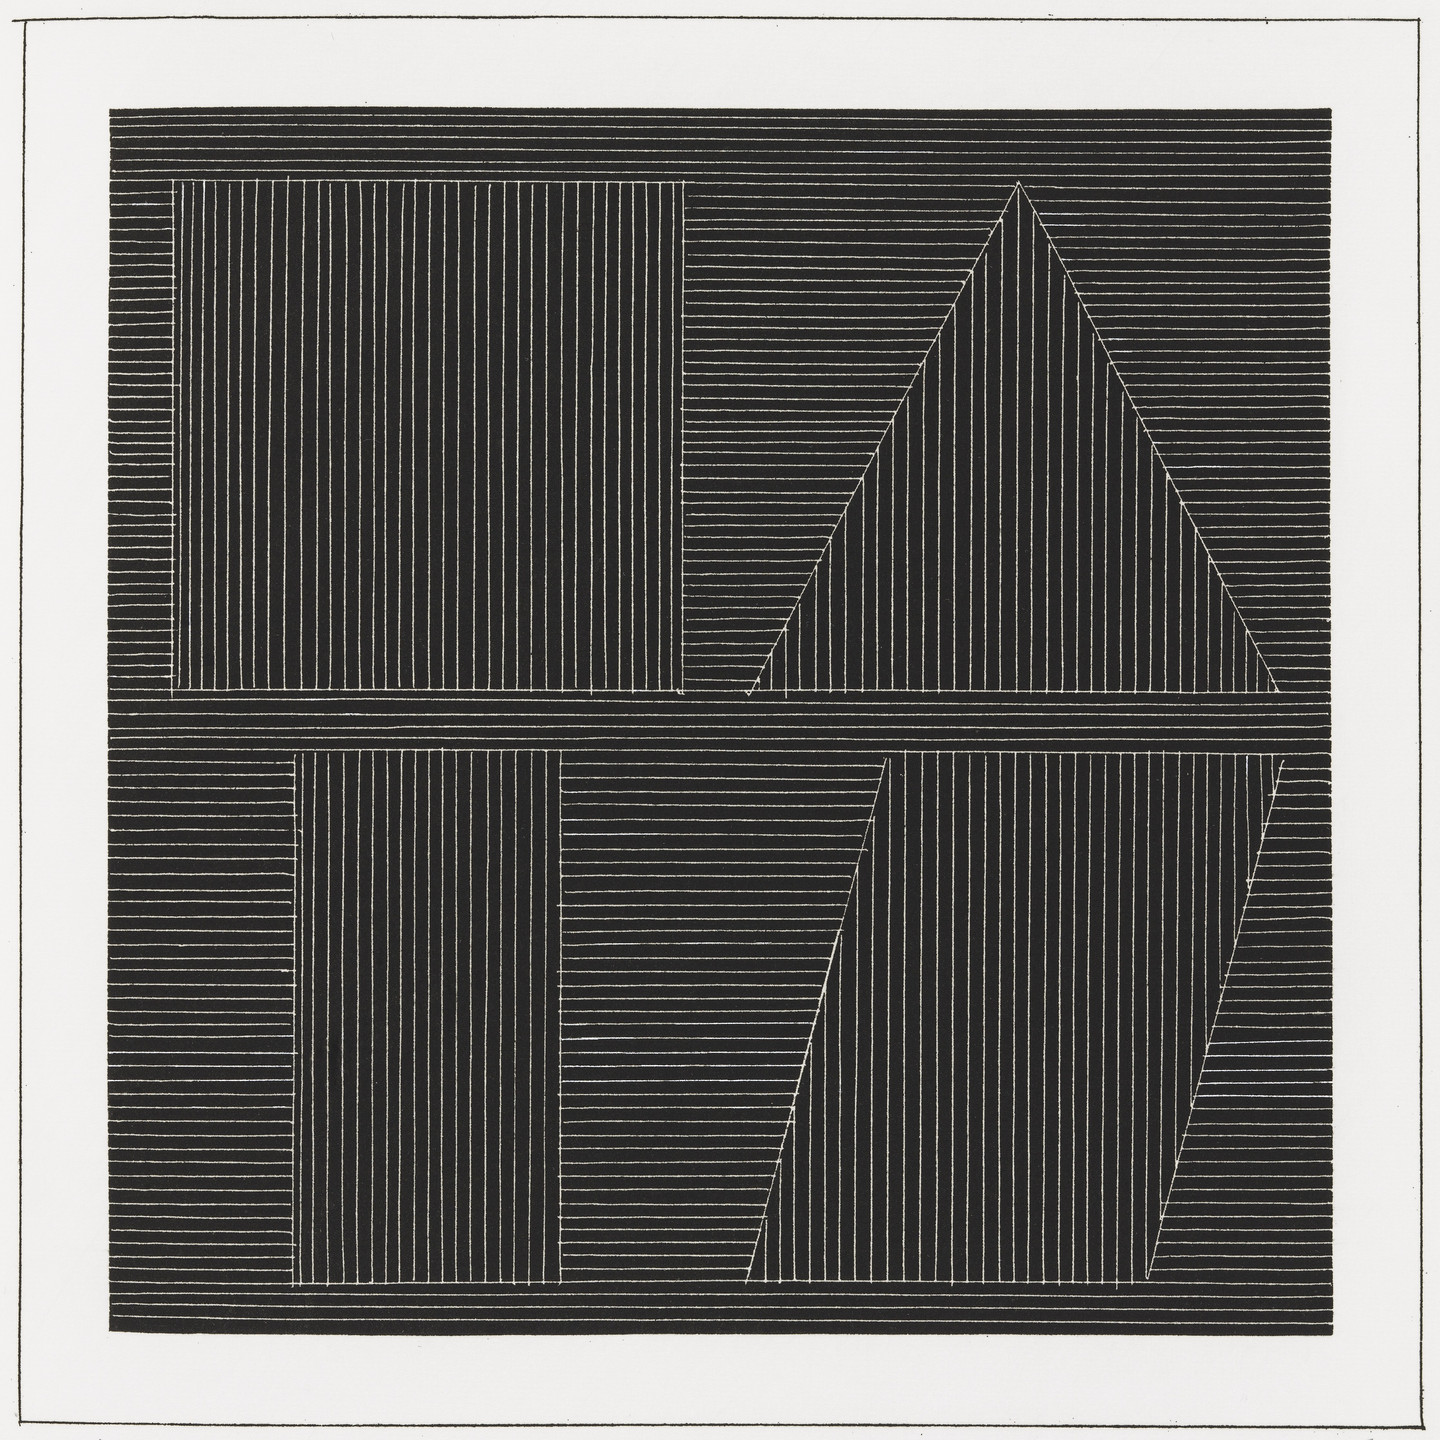 Sol LeWitt. Plate (folio 50) from Six Geometric Figures and All Their Combinations, Volume I. 1980